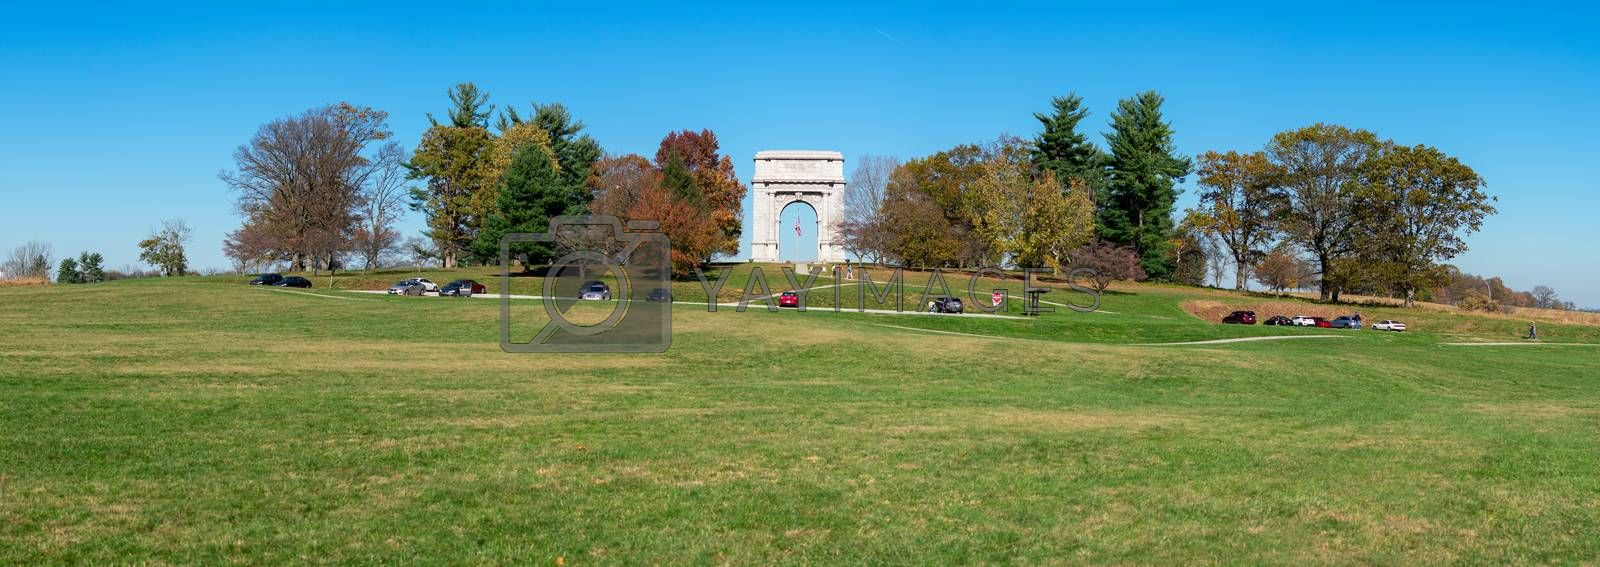 A Panoramic Shot of the National Memorial Arch and Surrounding Fields at Valley Forge National Historical Park